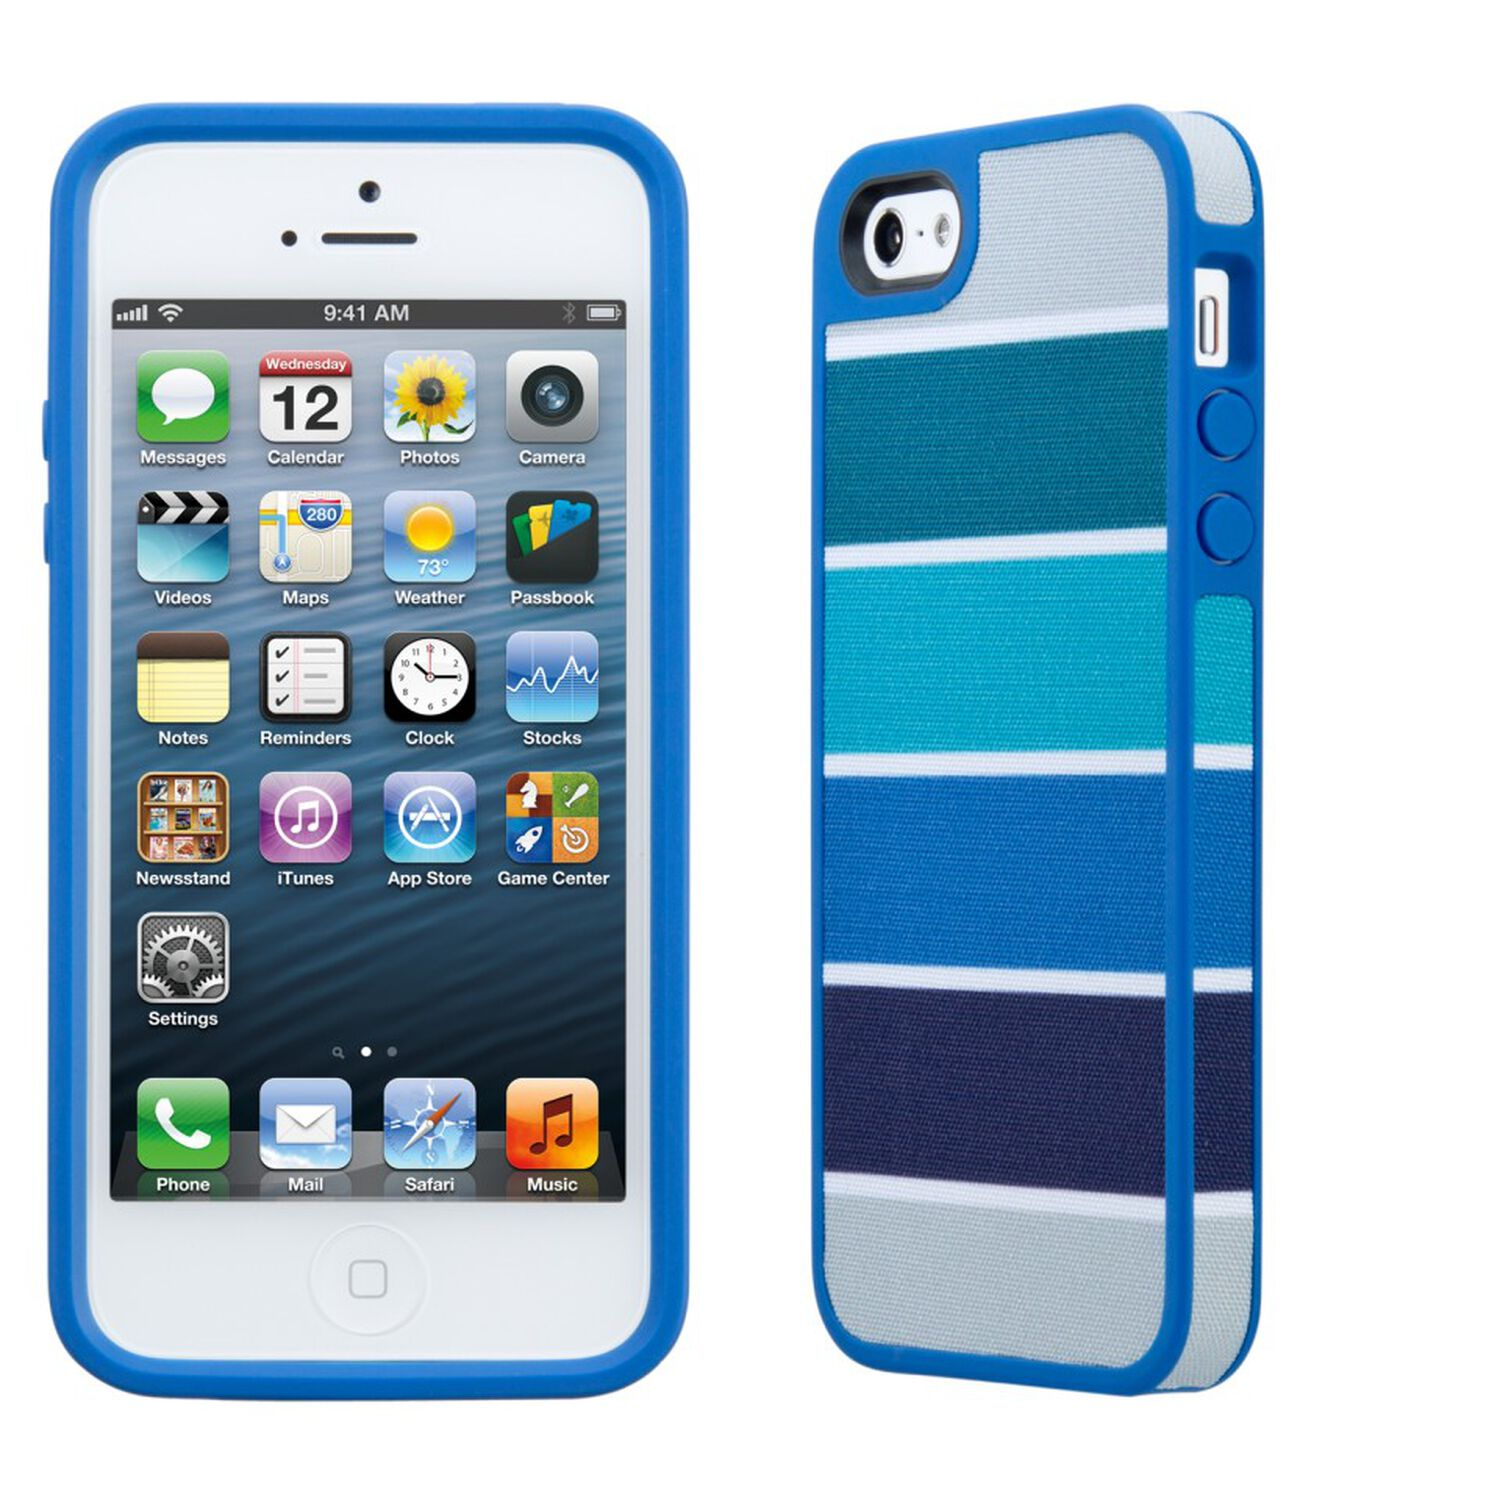 fabshell iphone se iphone 5s iphone 5 cases. Black Bedroom Furniture Sets. Home Design Ideas